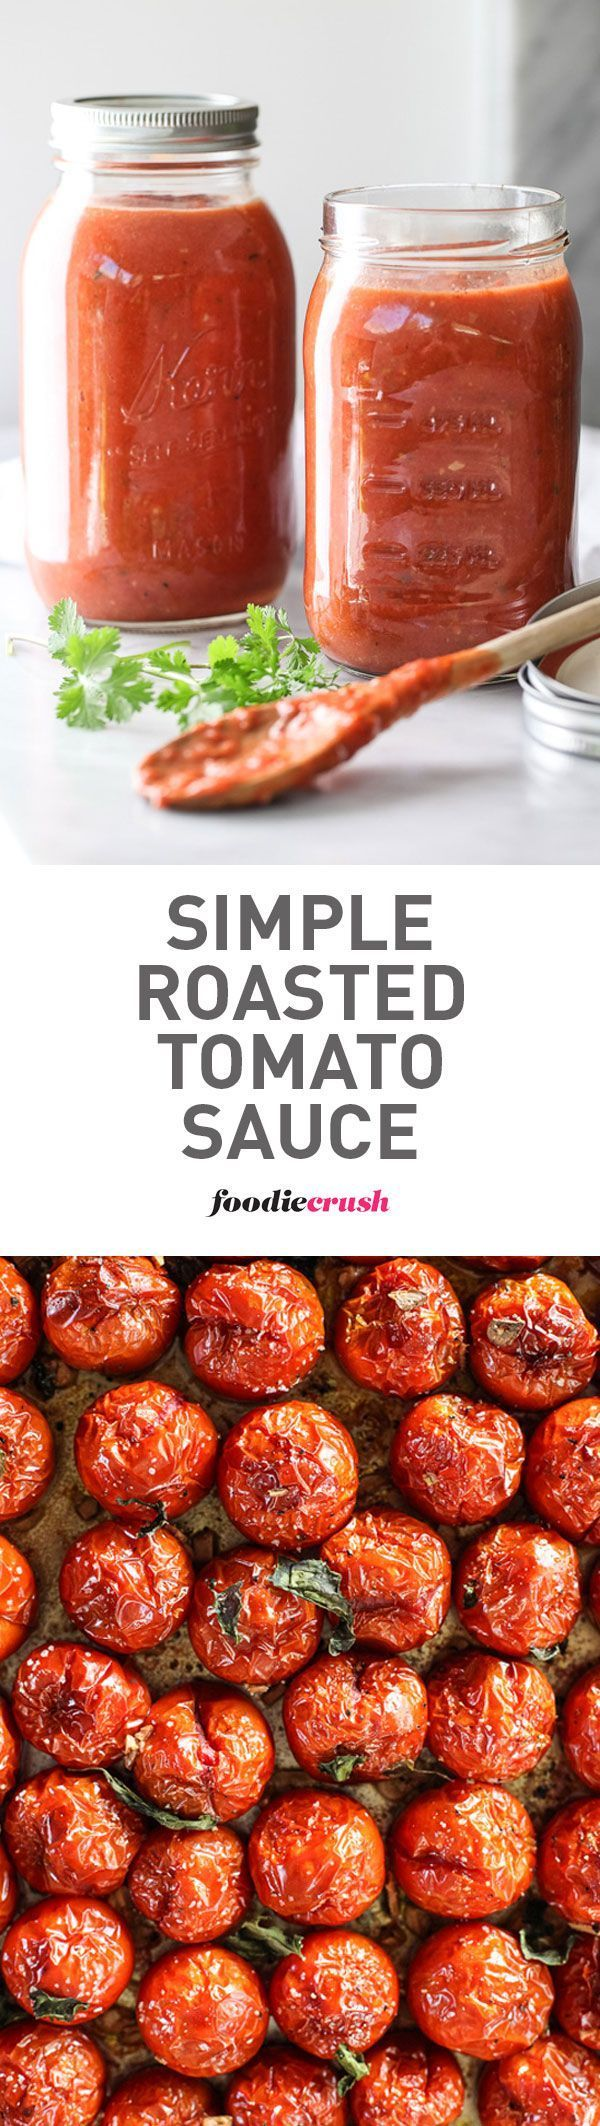 The secret to this favorite sauce #recipe starts with fresh tomatoes that are roasted in the oven to make them extra sweet all year round   http://foodiecrush.com